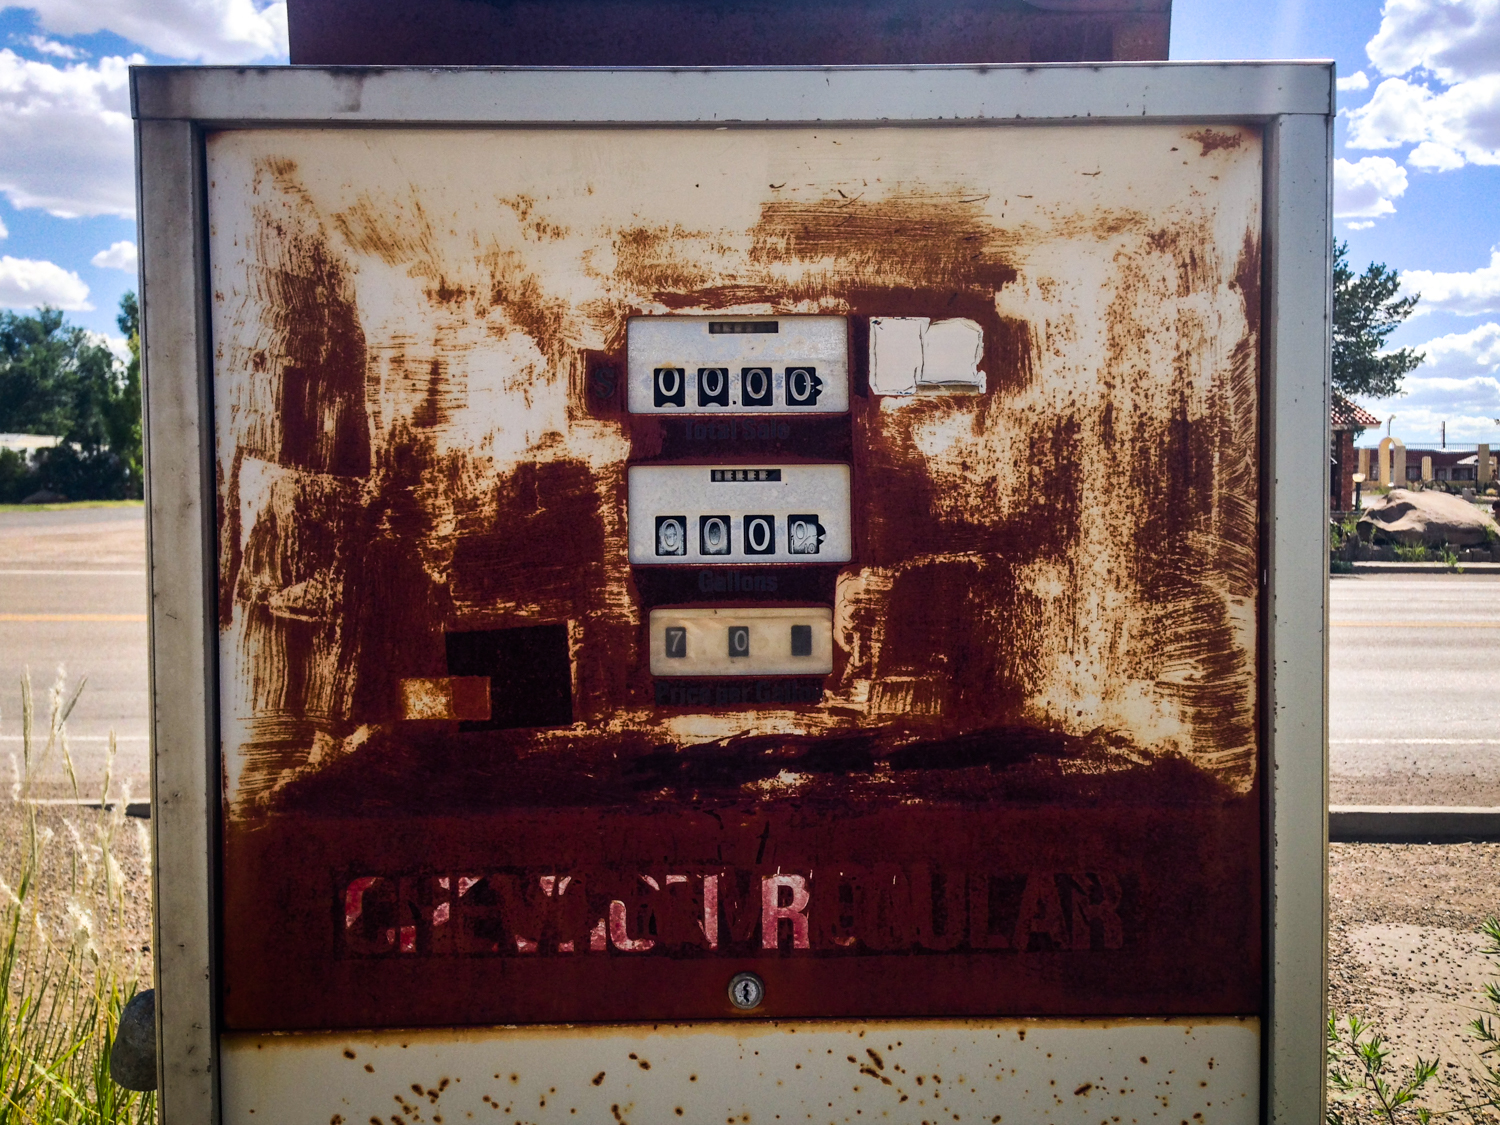 Old gas pump, Vaughn NM